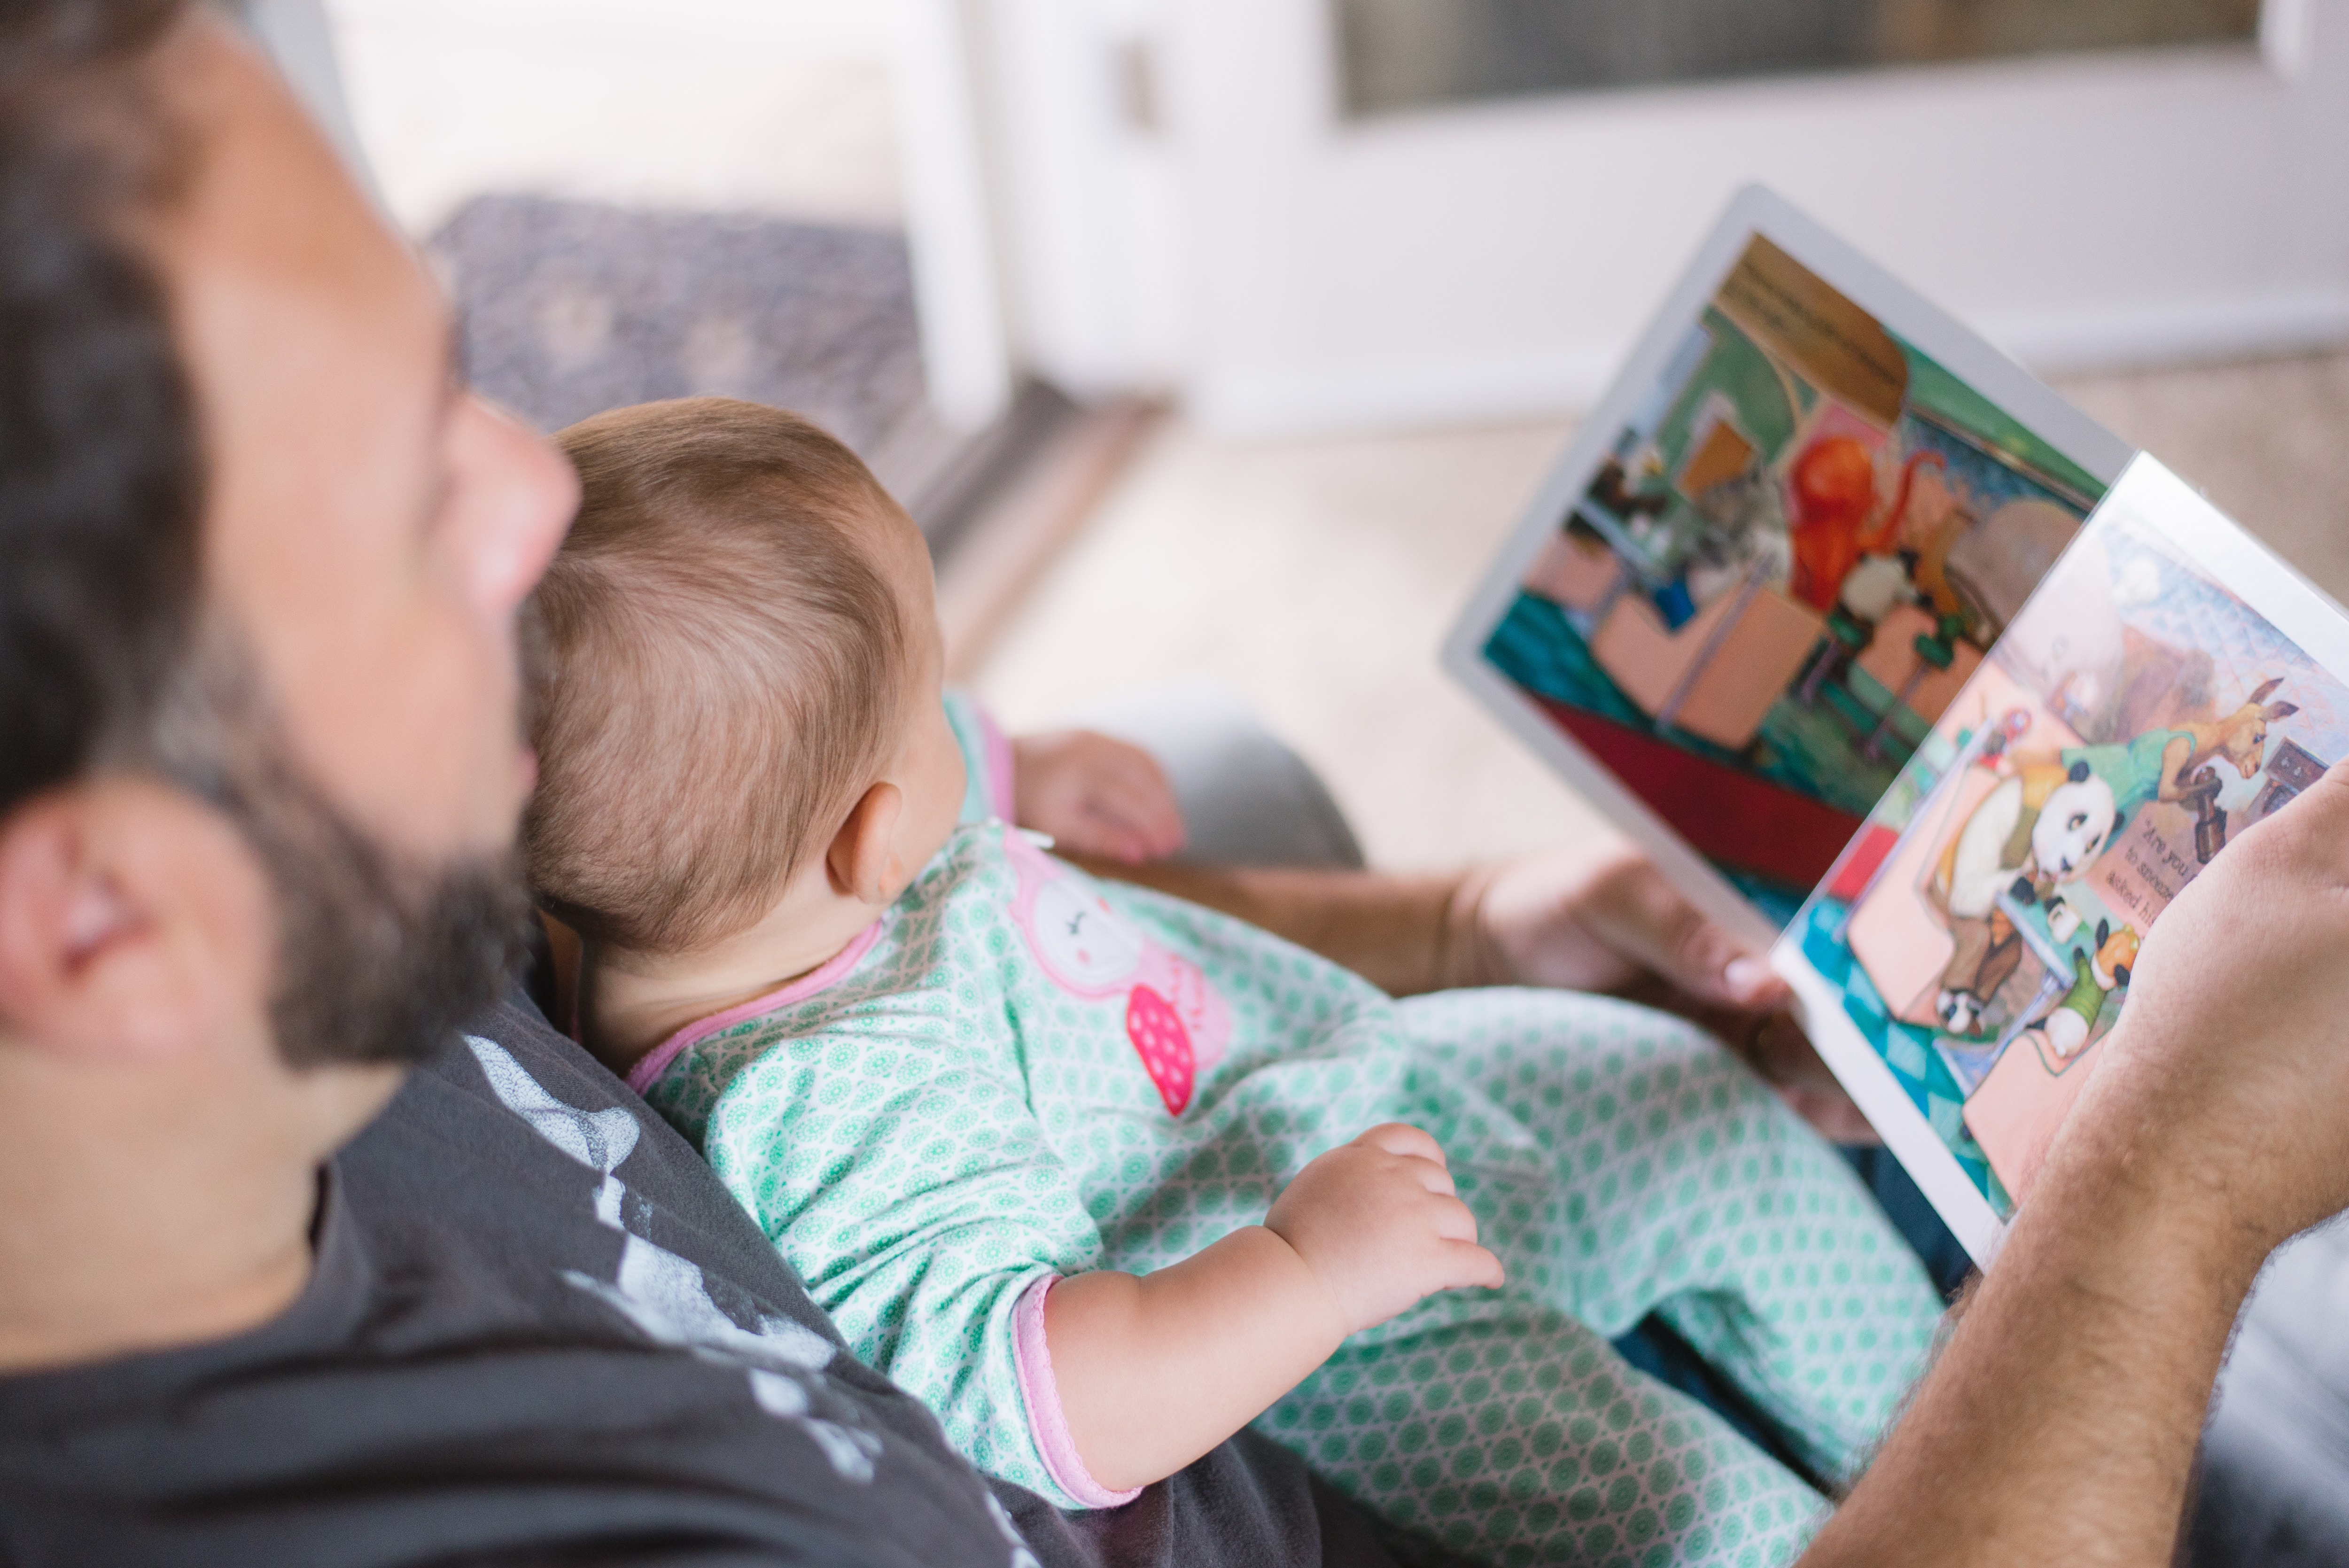 Stock image of dad reading book for child